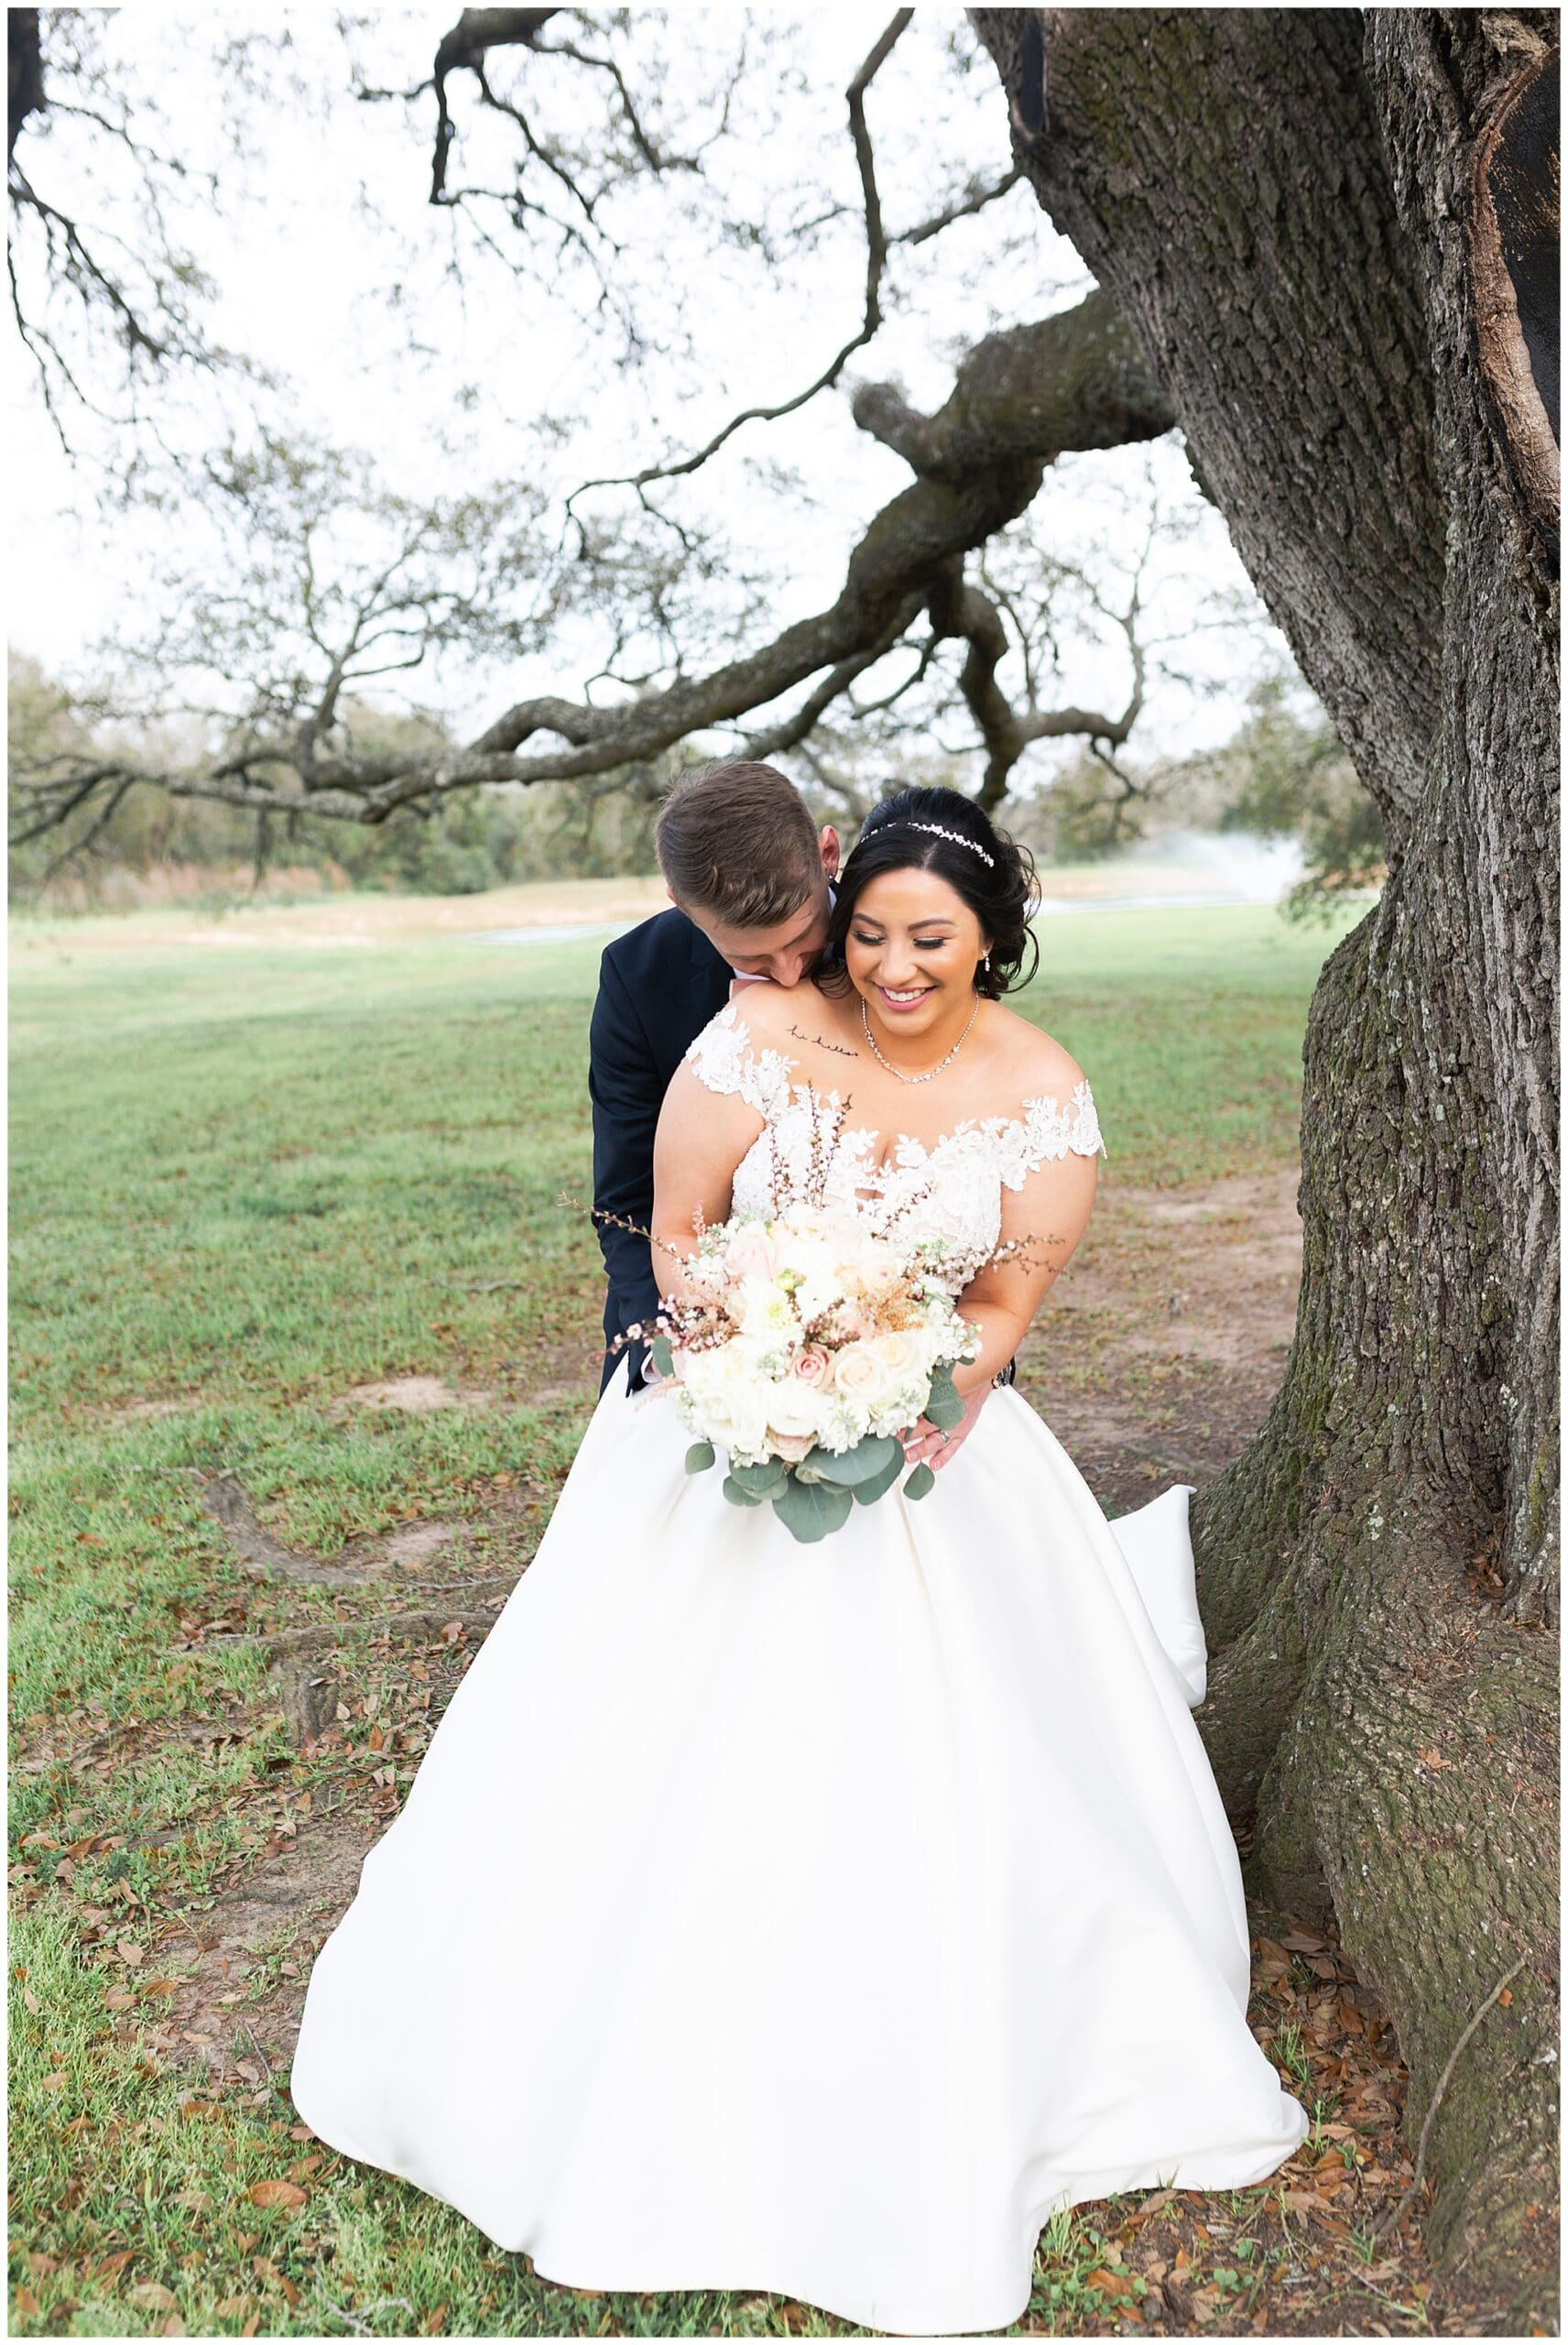 bride and groom portraits at Bridal Oaks in Cypress Texas by Houston wedding photographer Swish and Click Photography